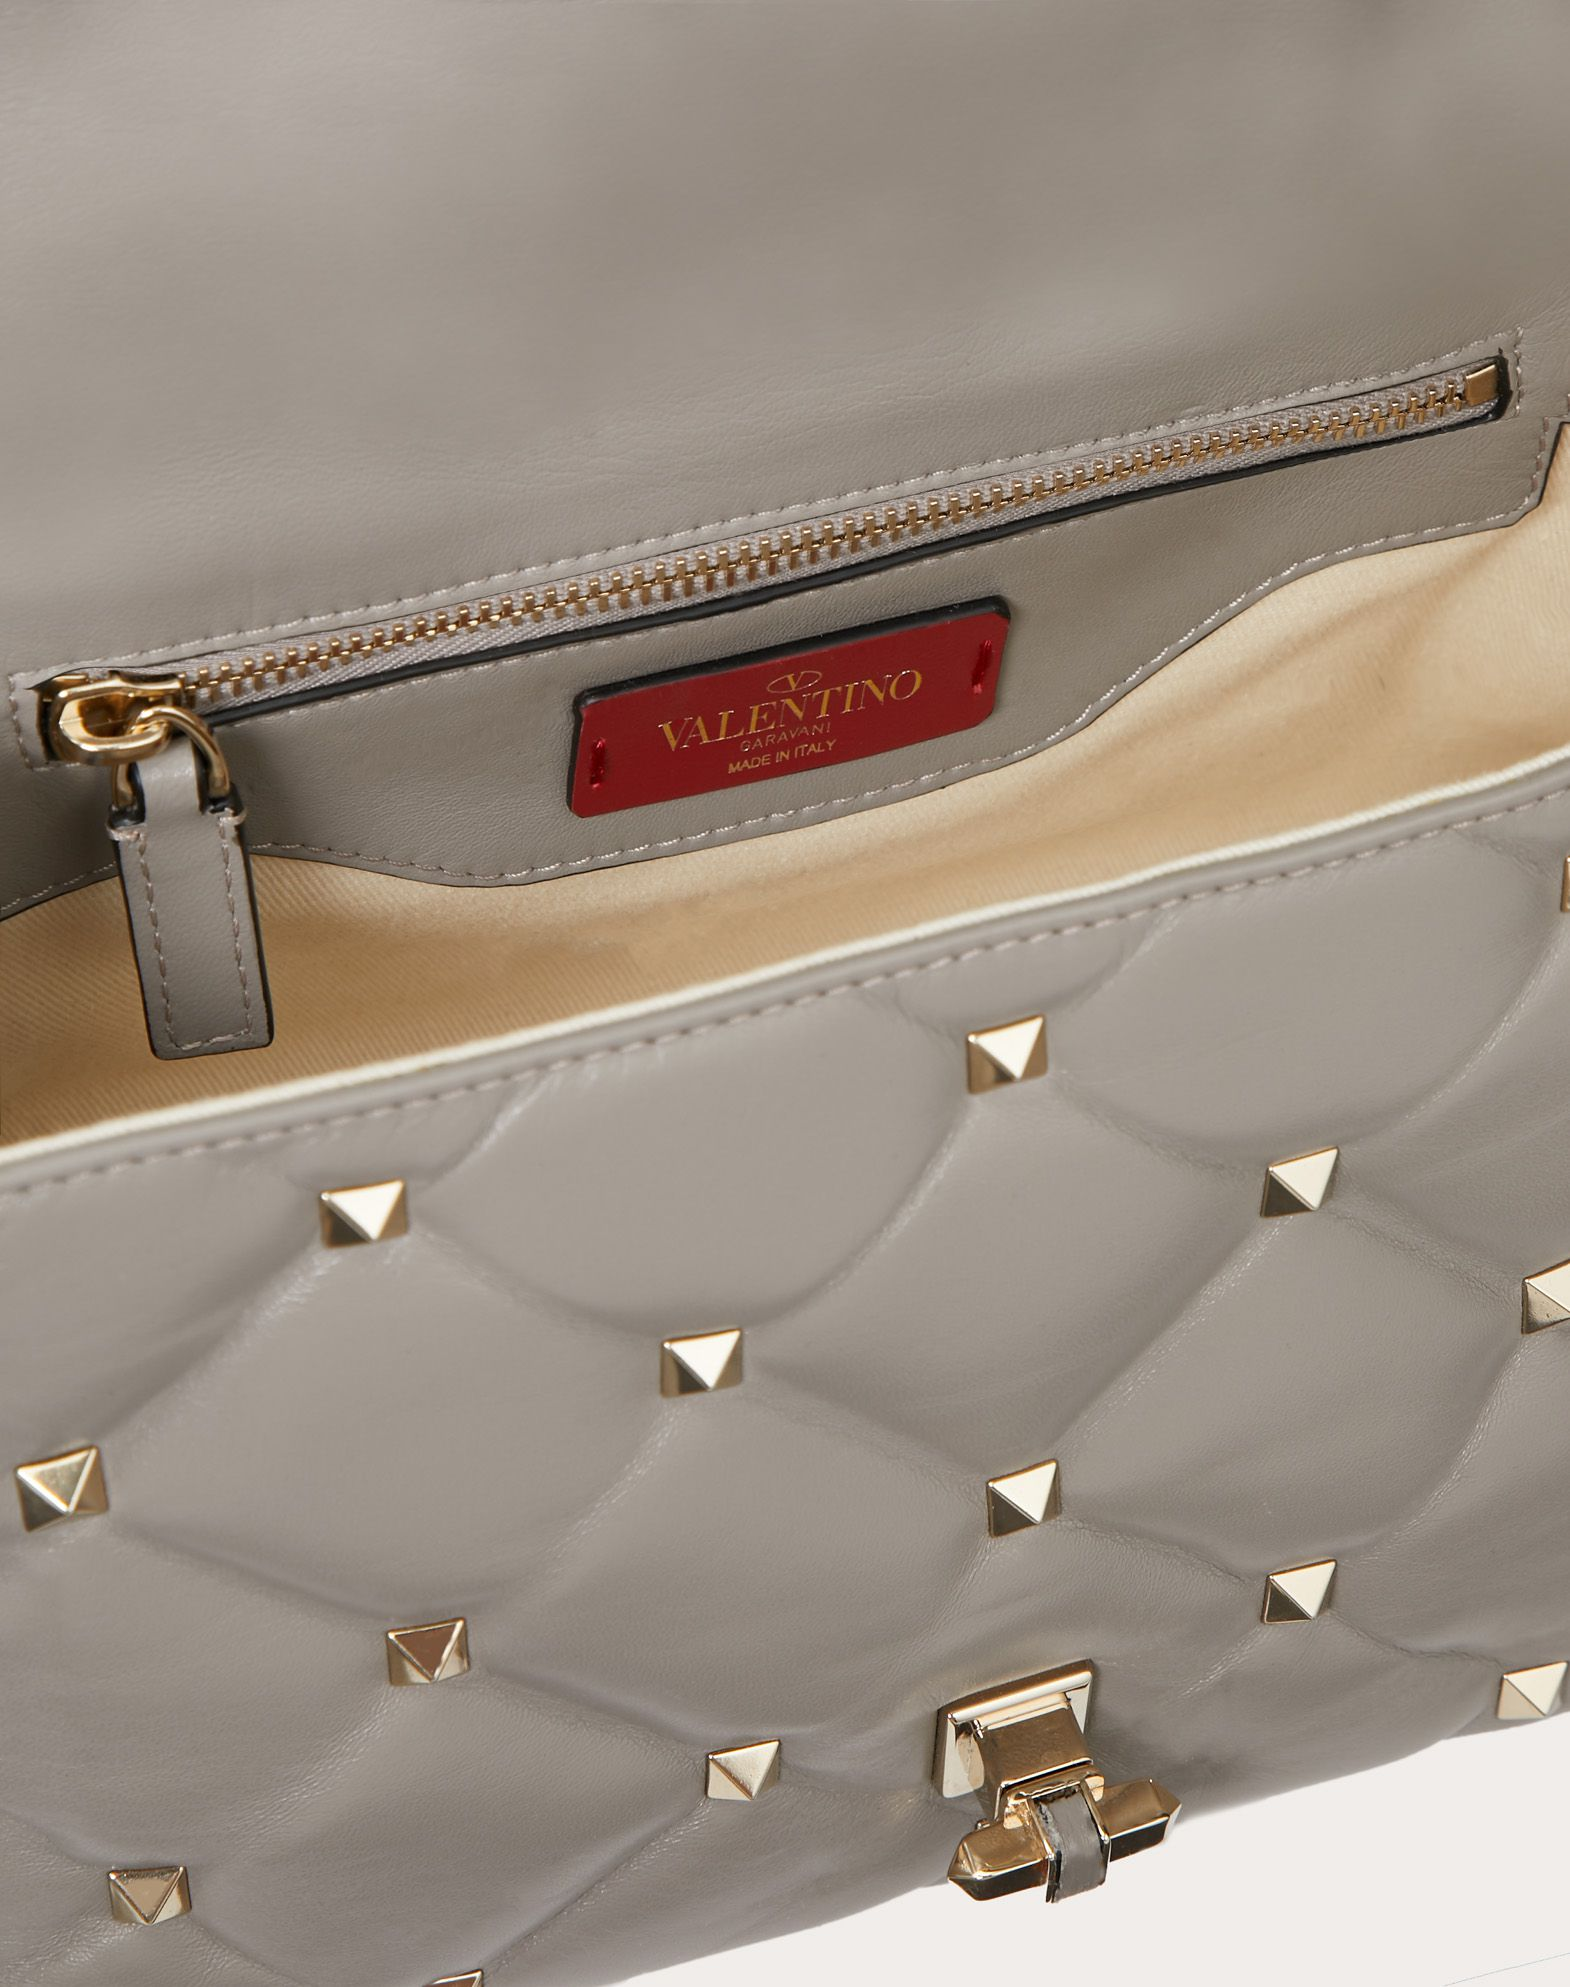 VALENTINO GARAVANI Candystud Top Handle Bag HANDBAG D e